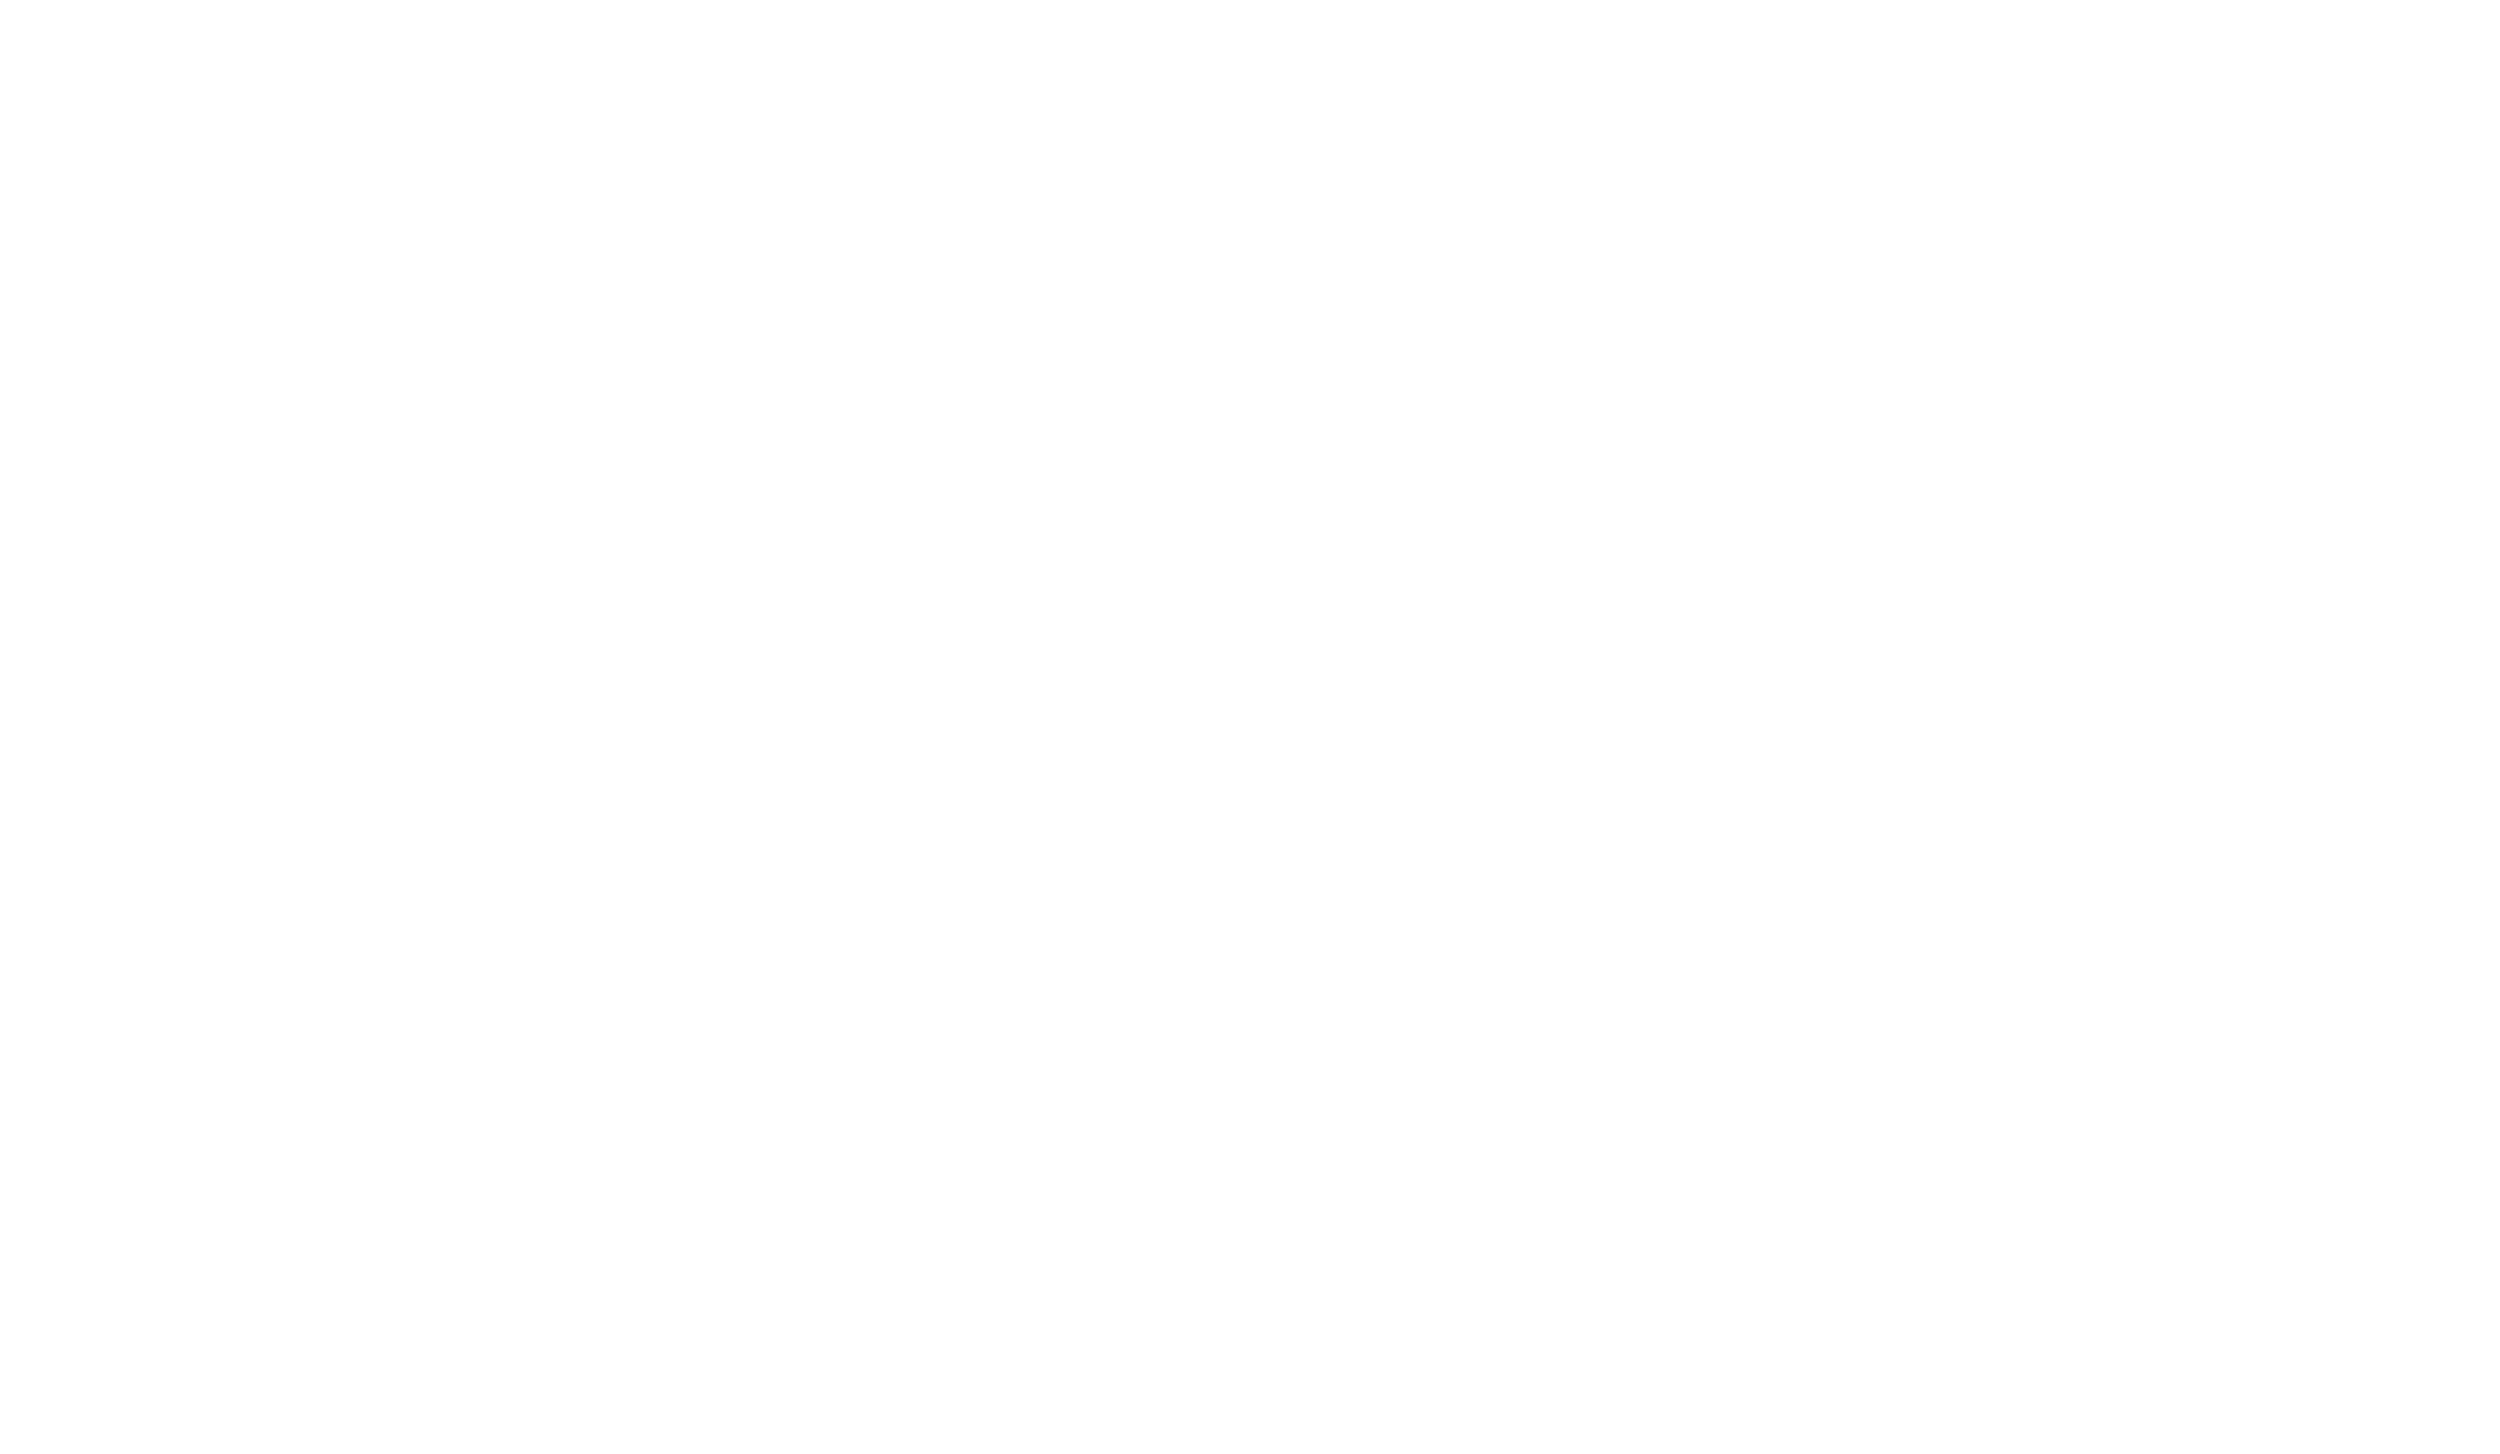 KOI Dessert Bar & Dining